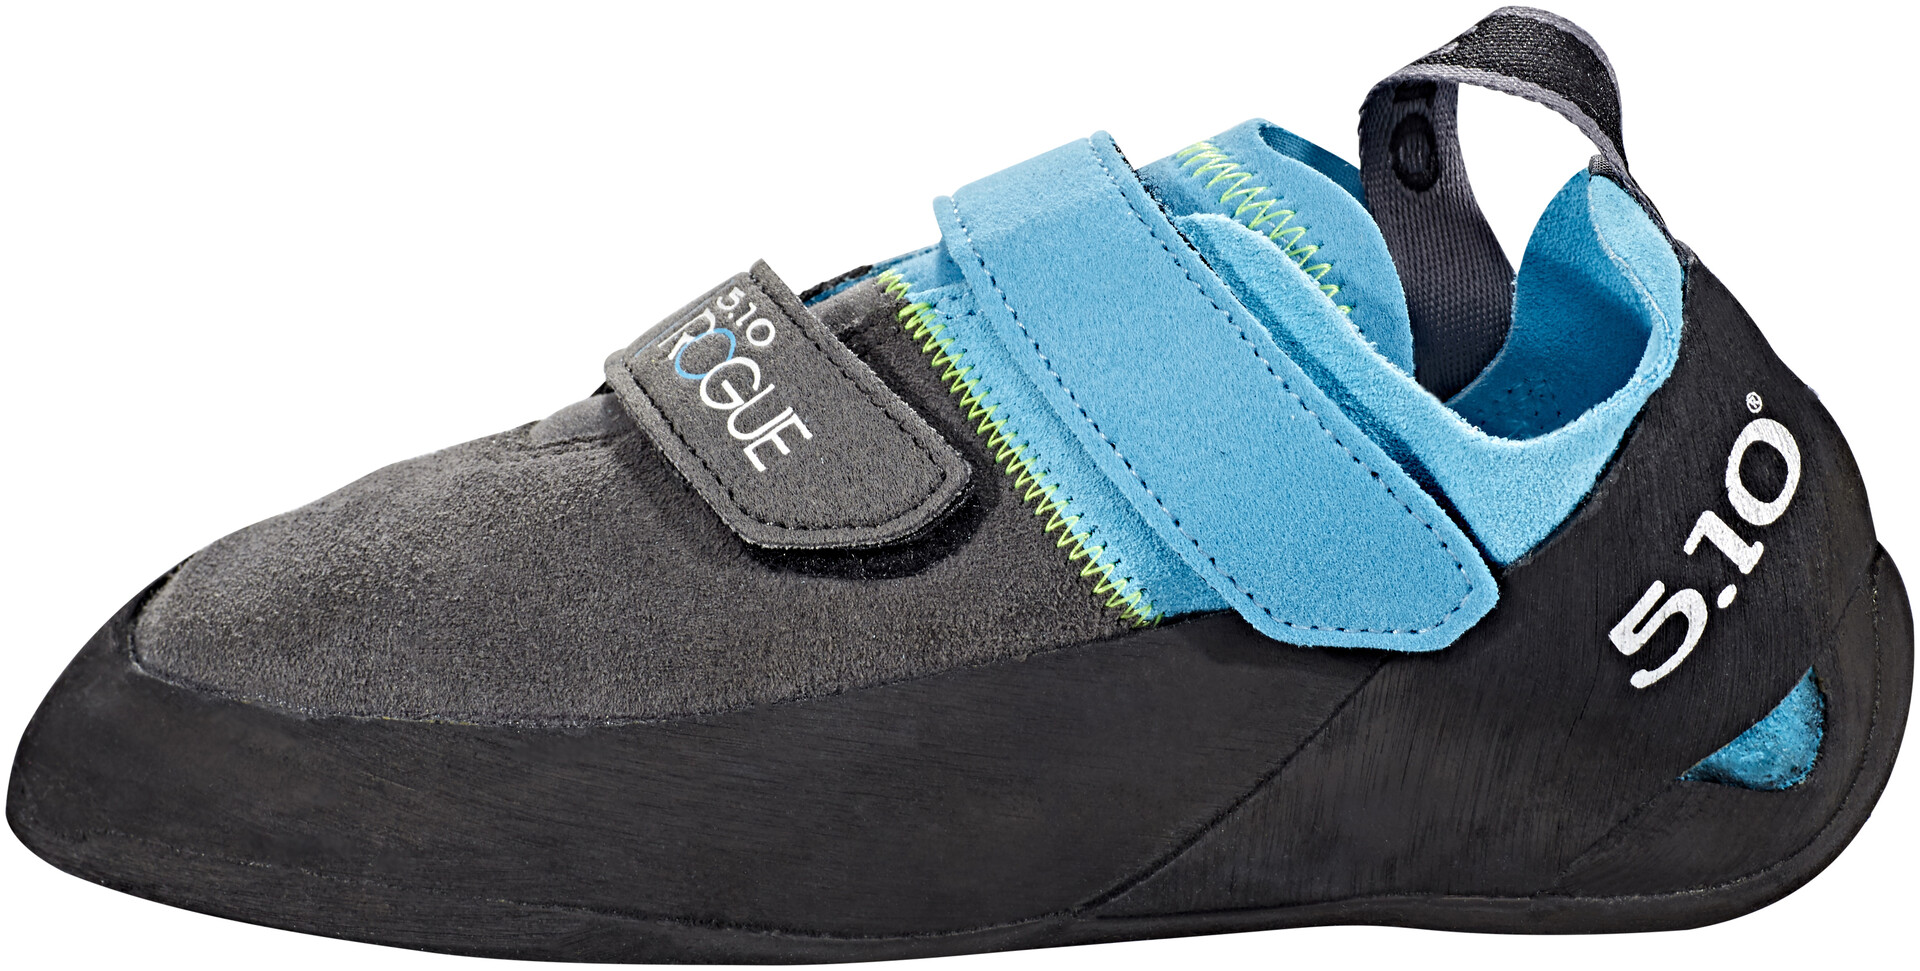 adidas Five Ten Rogue VCS Scarpe Uomo, neon blue/charcoal su Addnature eEMKc